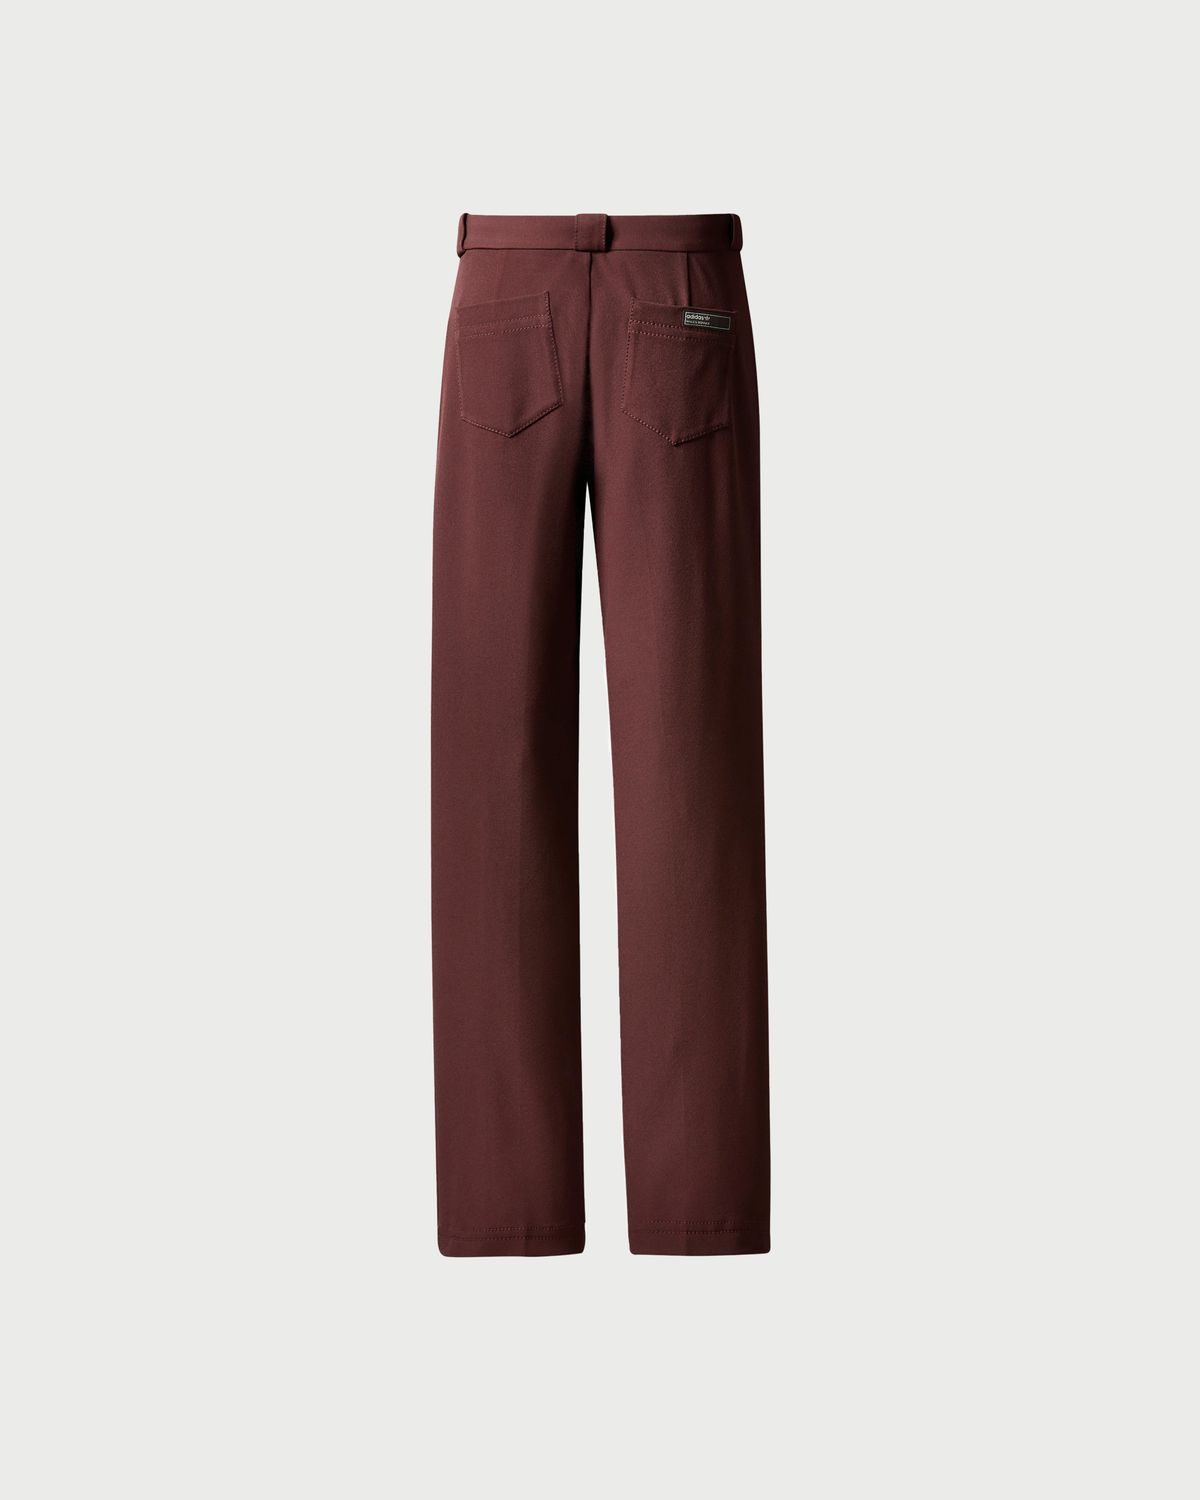 Adidas x Wales Bonner - Rock Pants Brown - Image 2